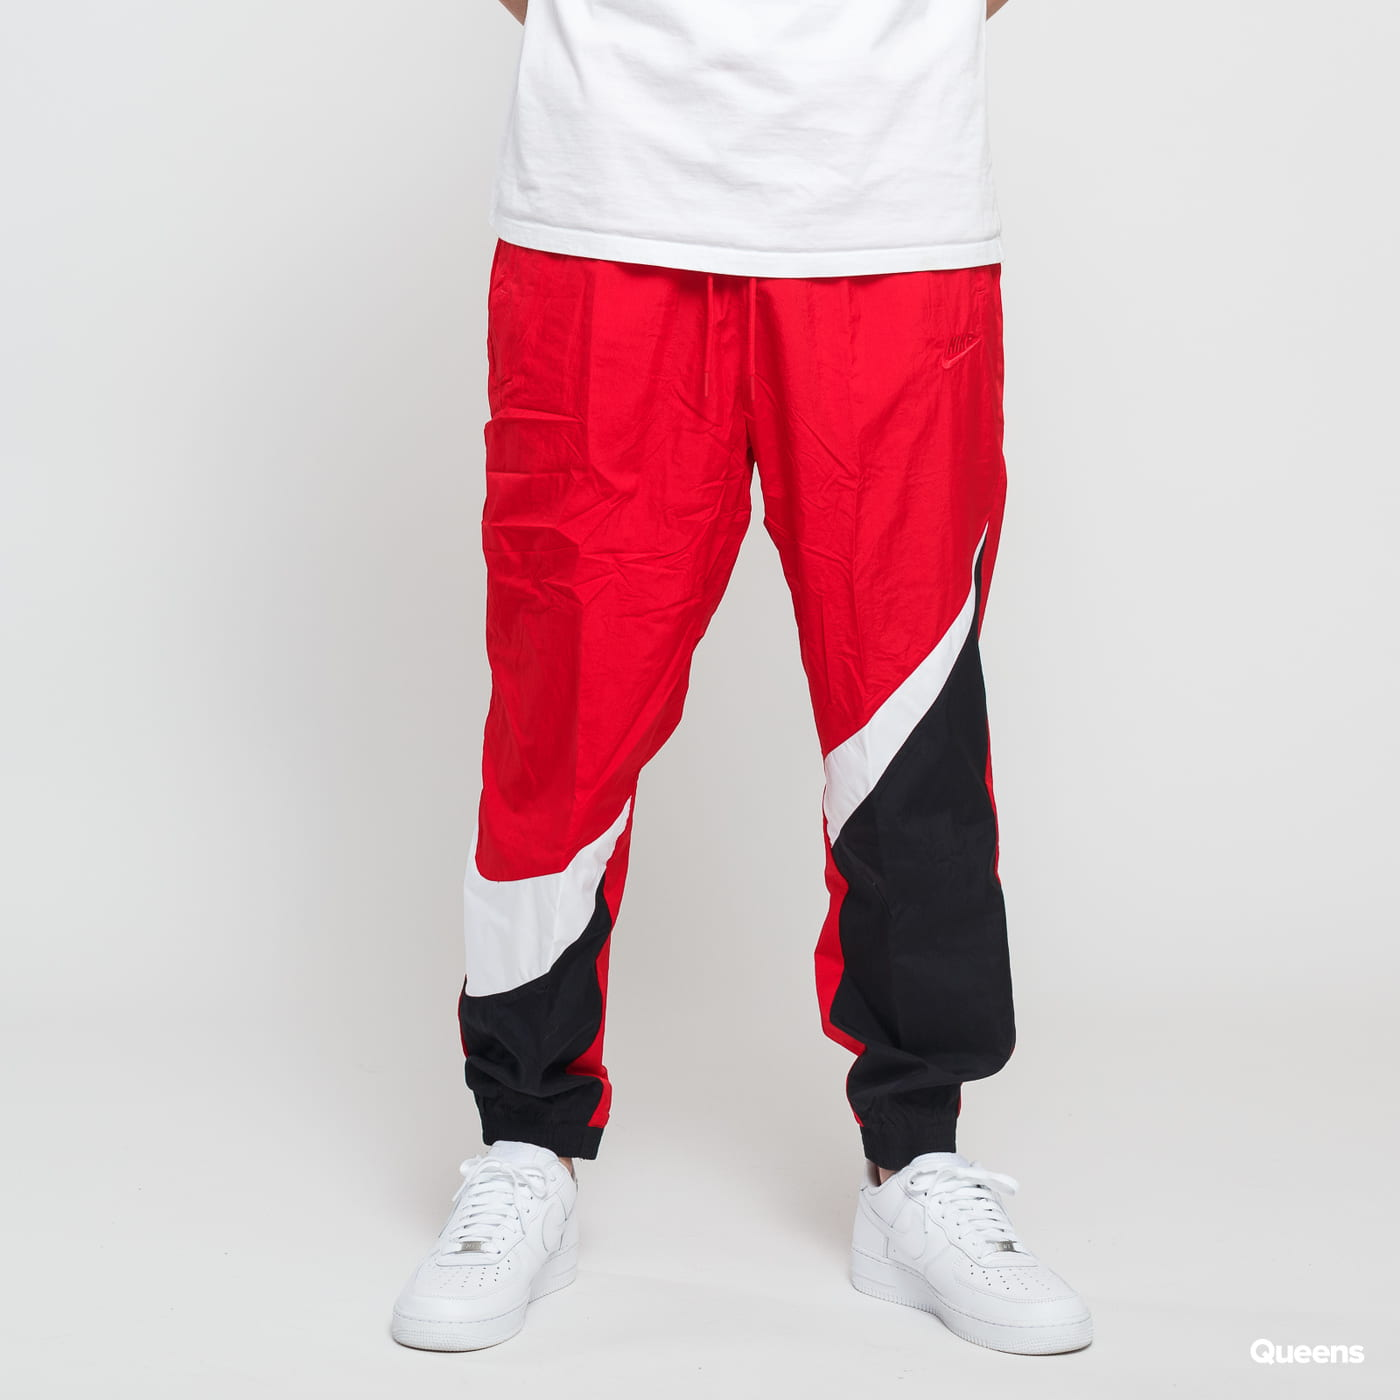 Listo Sin alterar oyente  Track Pants Nike M NSW HBR Pant Woven Statement red / black / white  (AR9894-657) – Queens 💚